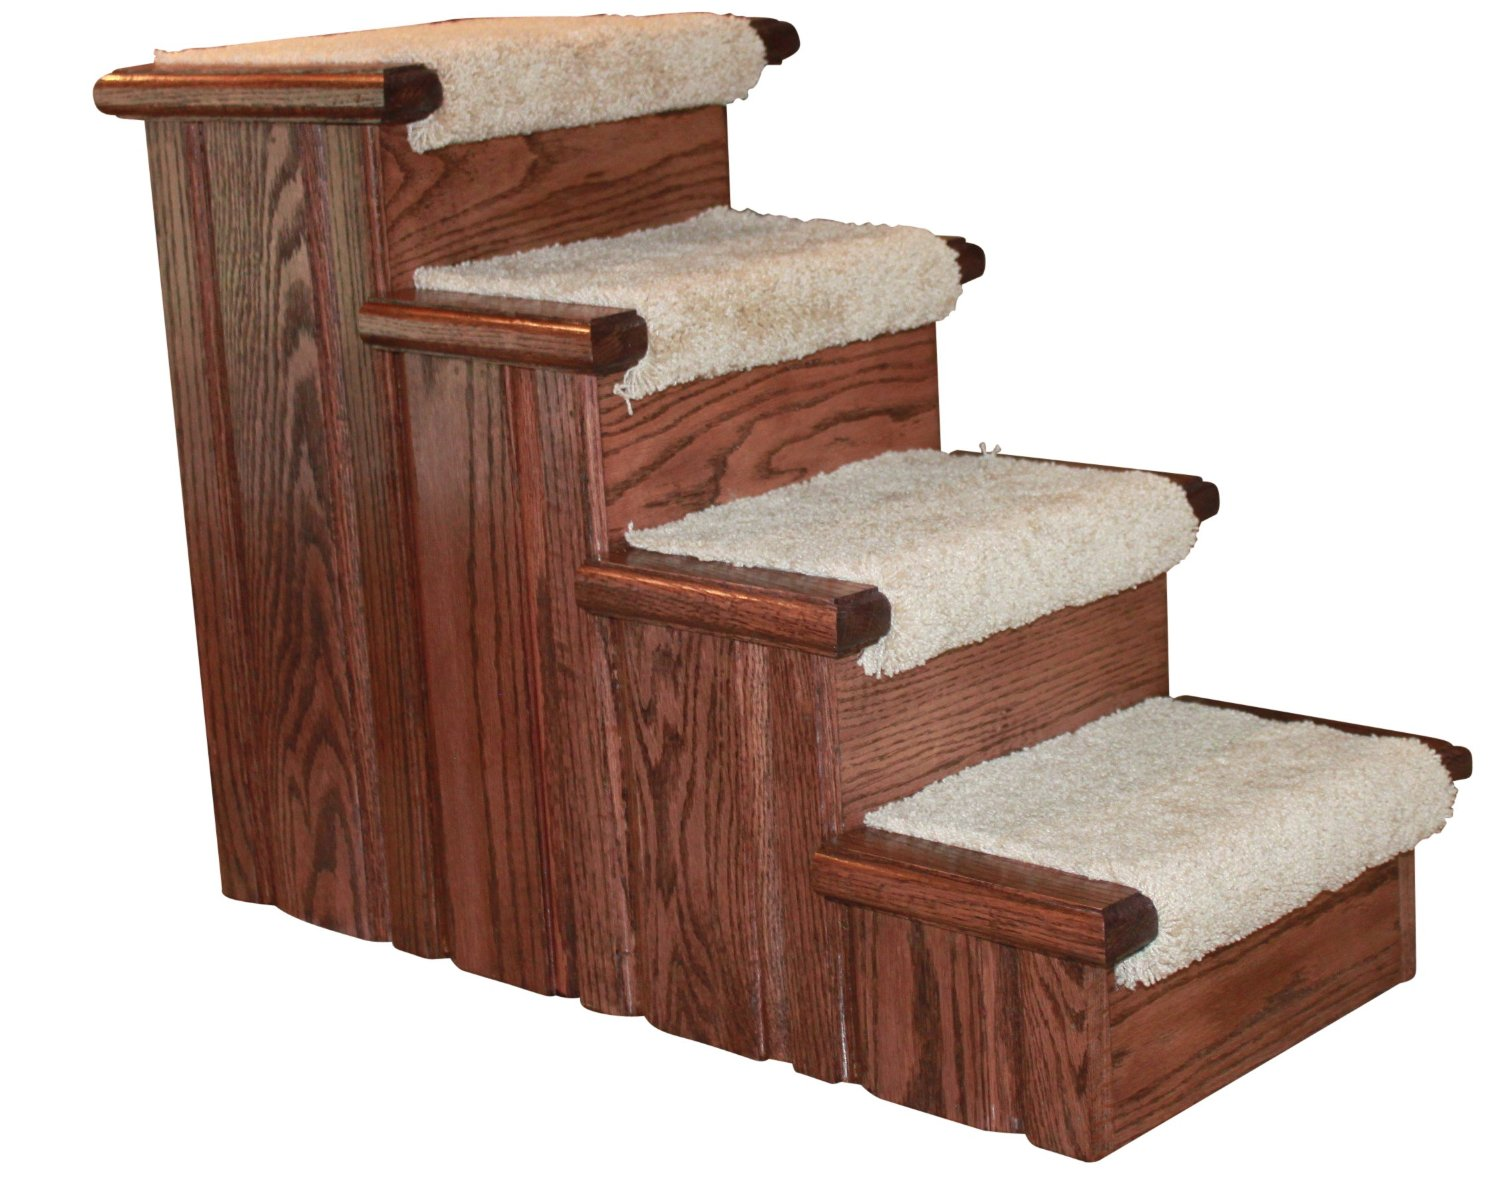 chic non slip stair treads in white for stair care step ideas